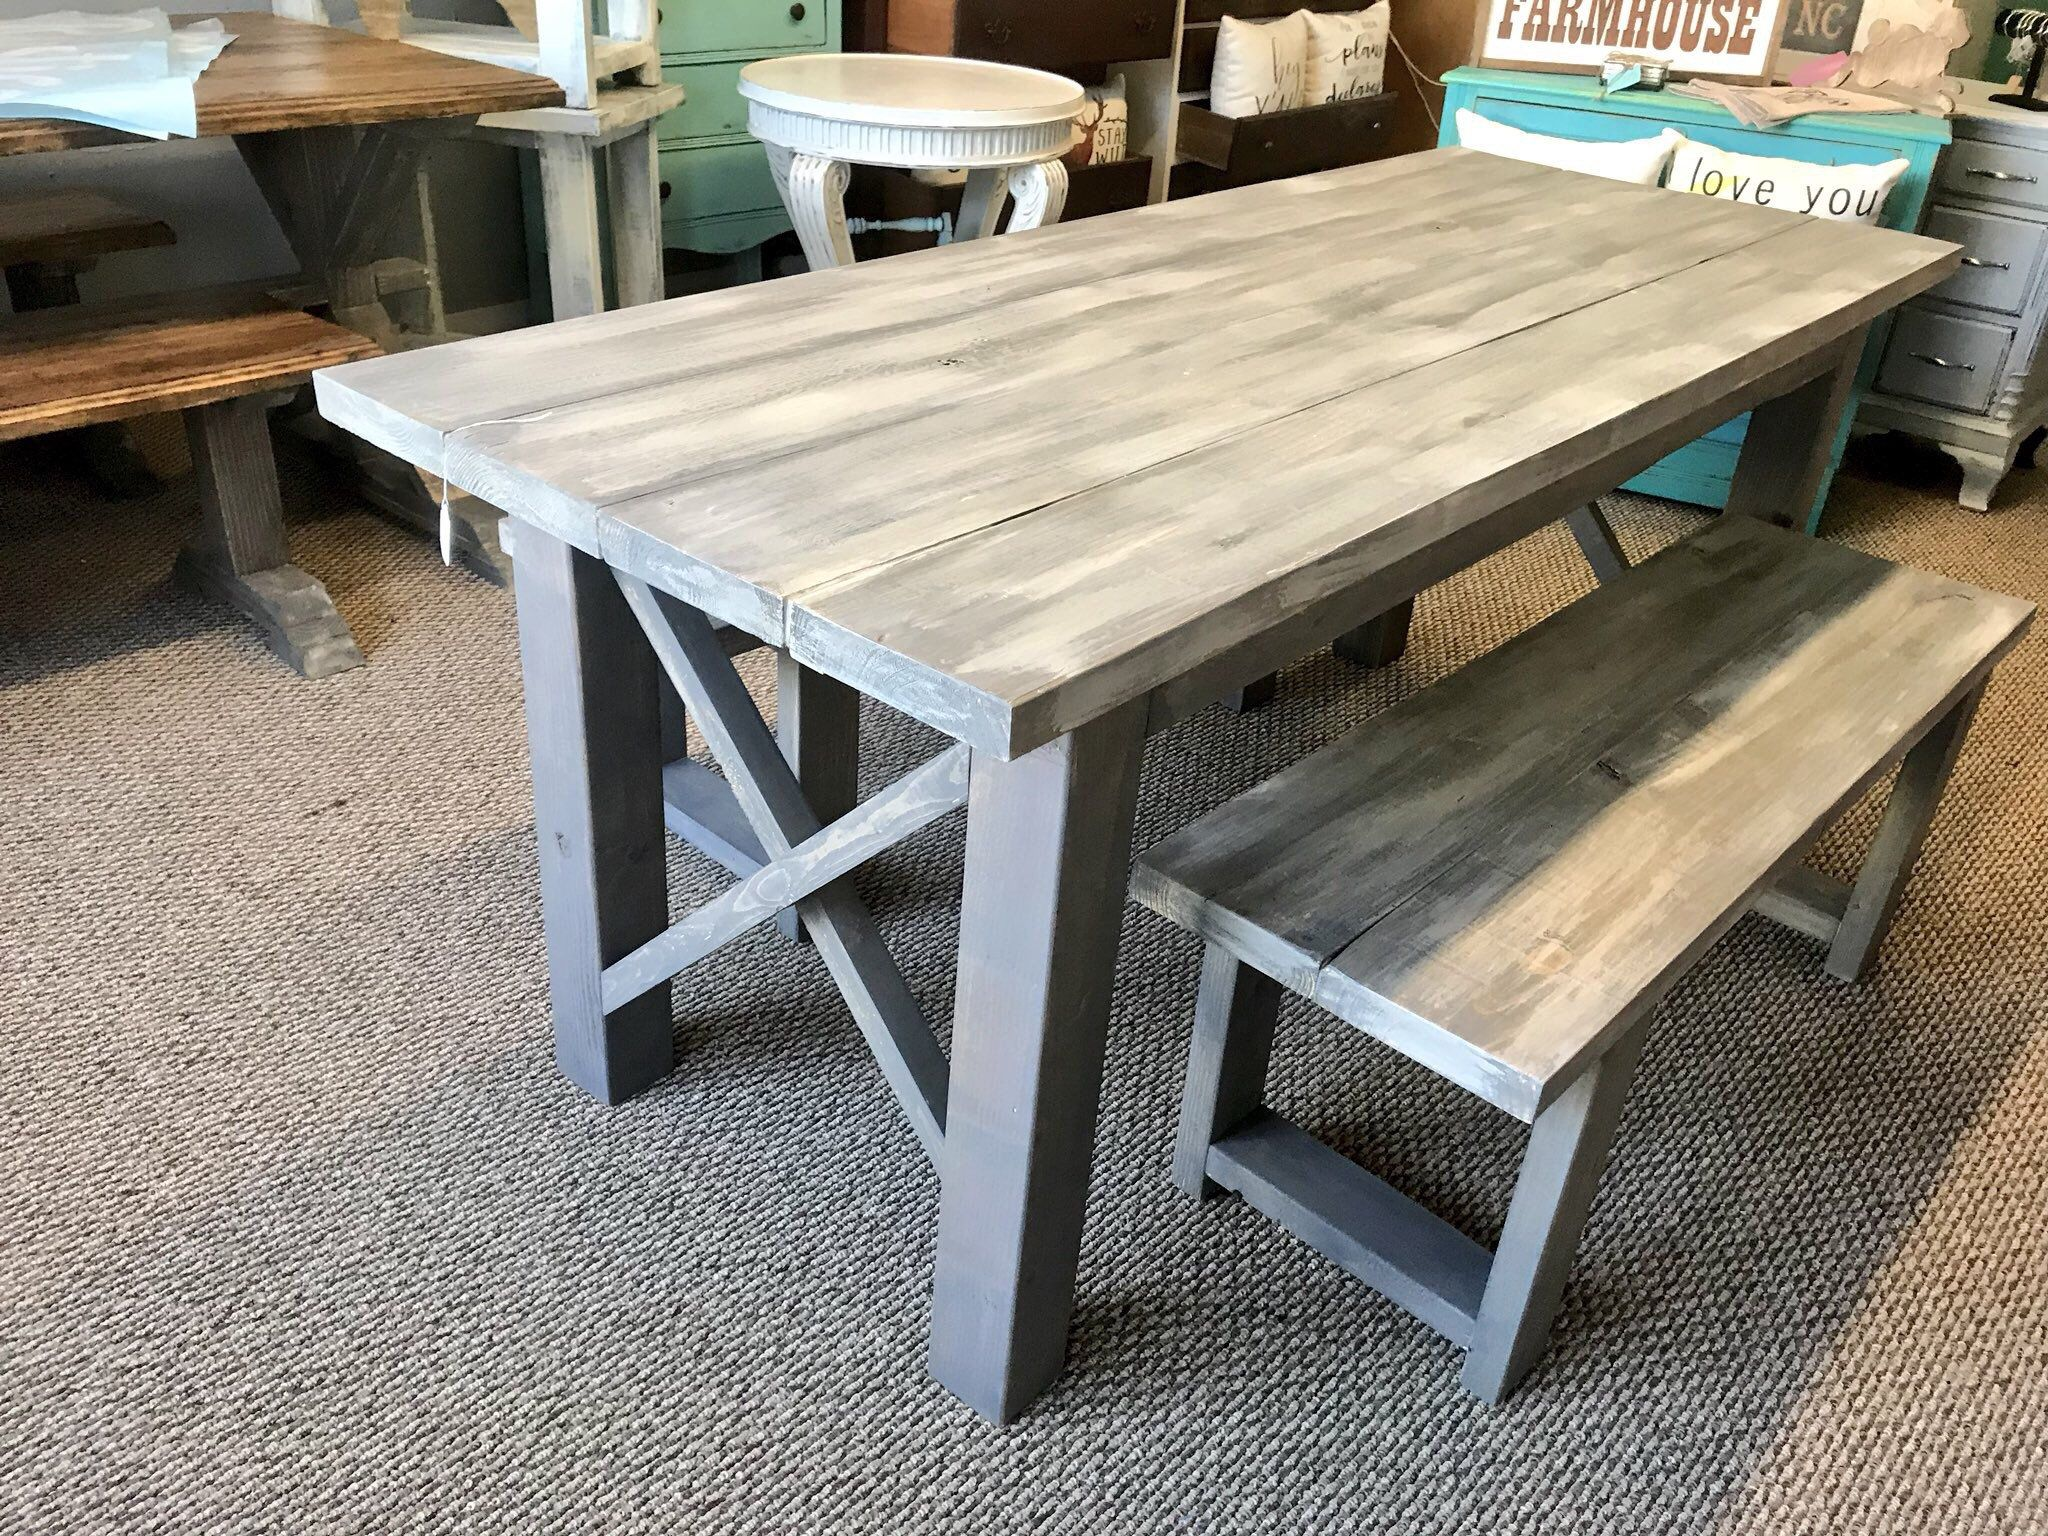 Rustic Wooden Farmhouse Table Set With Gray White Wash Top And